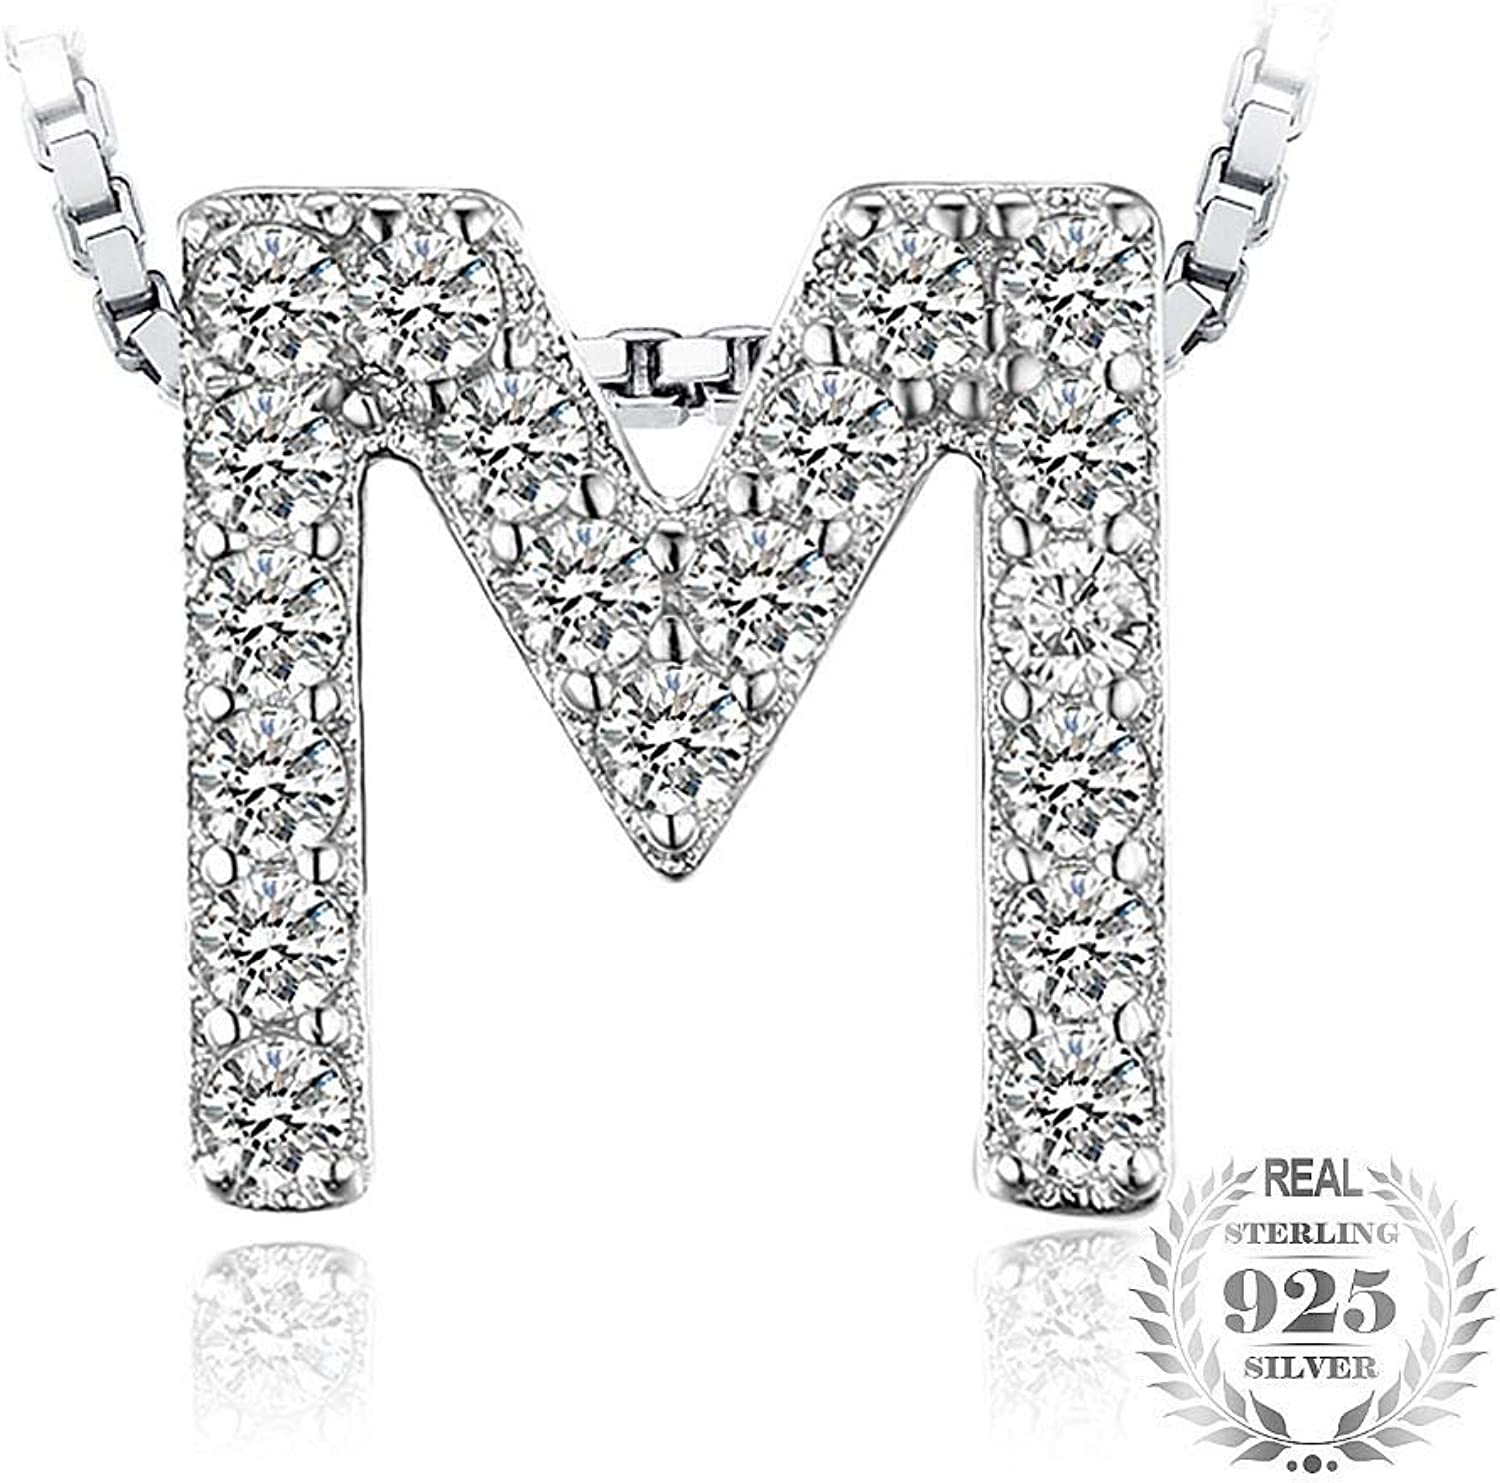 GSYDSZ Letter M Initial Cubic Zirconia Pendant 925 Sterling Silver Gift for The Mother's Day Not Include A Chain